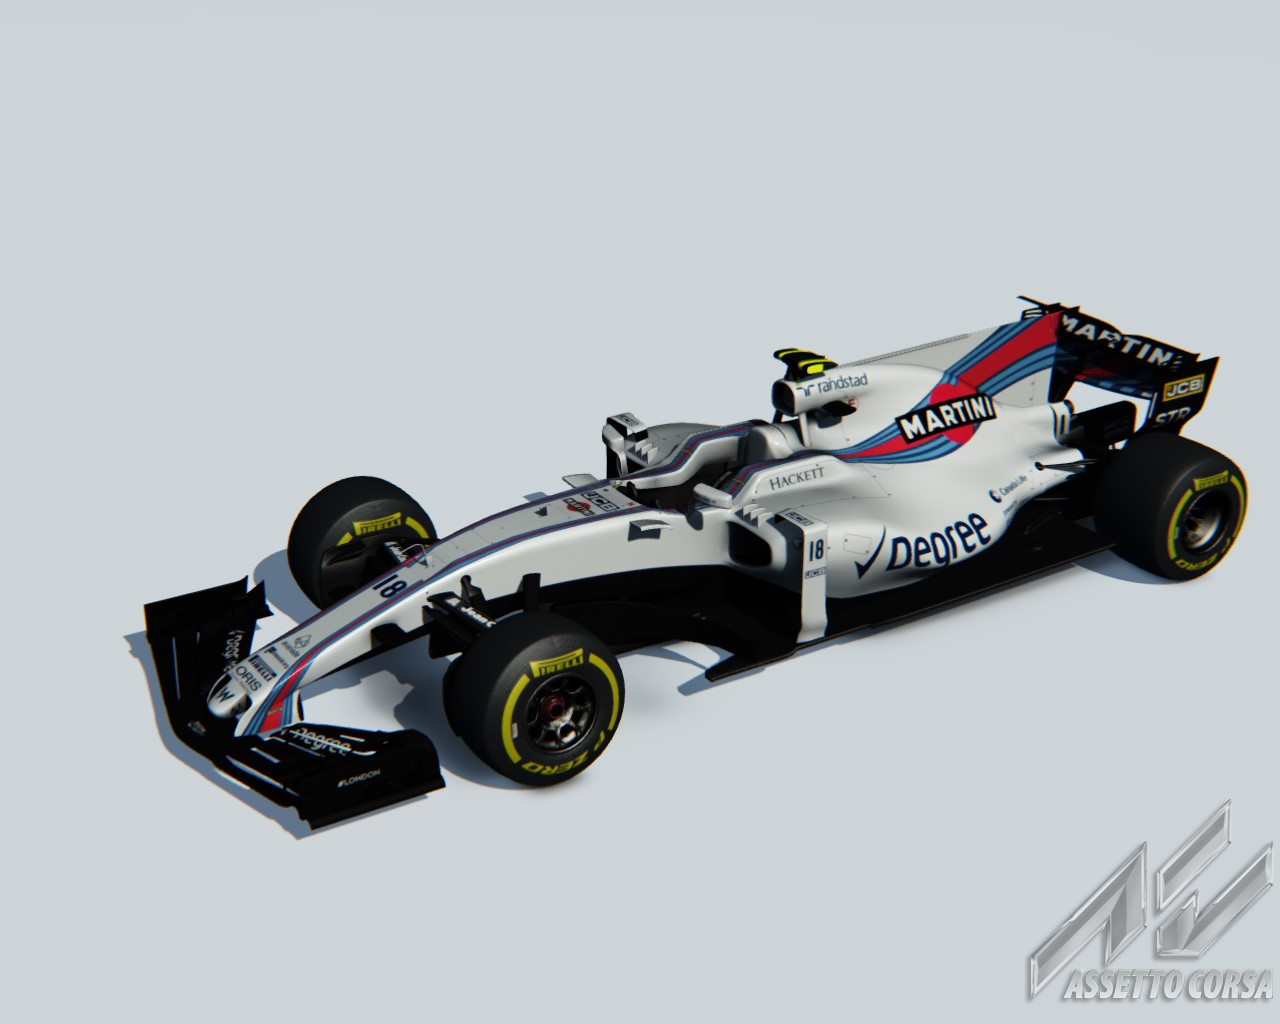 Showroom_acfl_2017_williams_19-5-2017-22-12-54.jpg